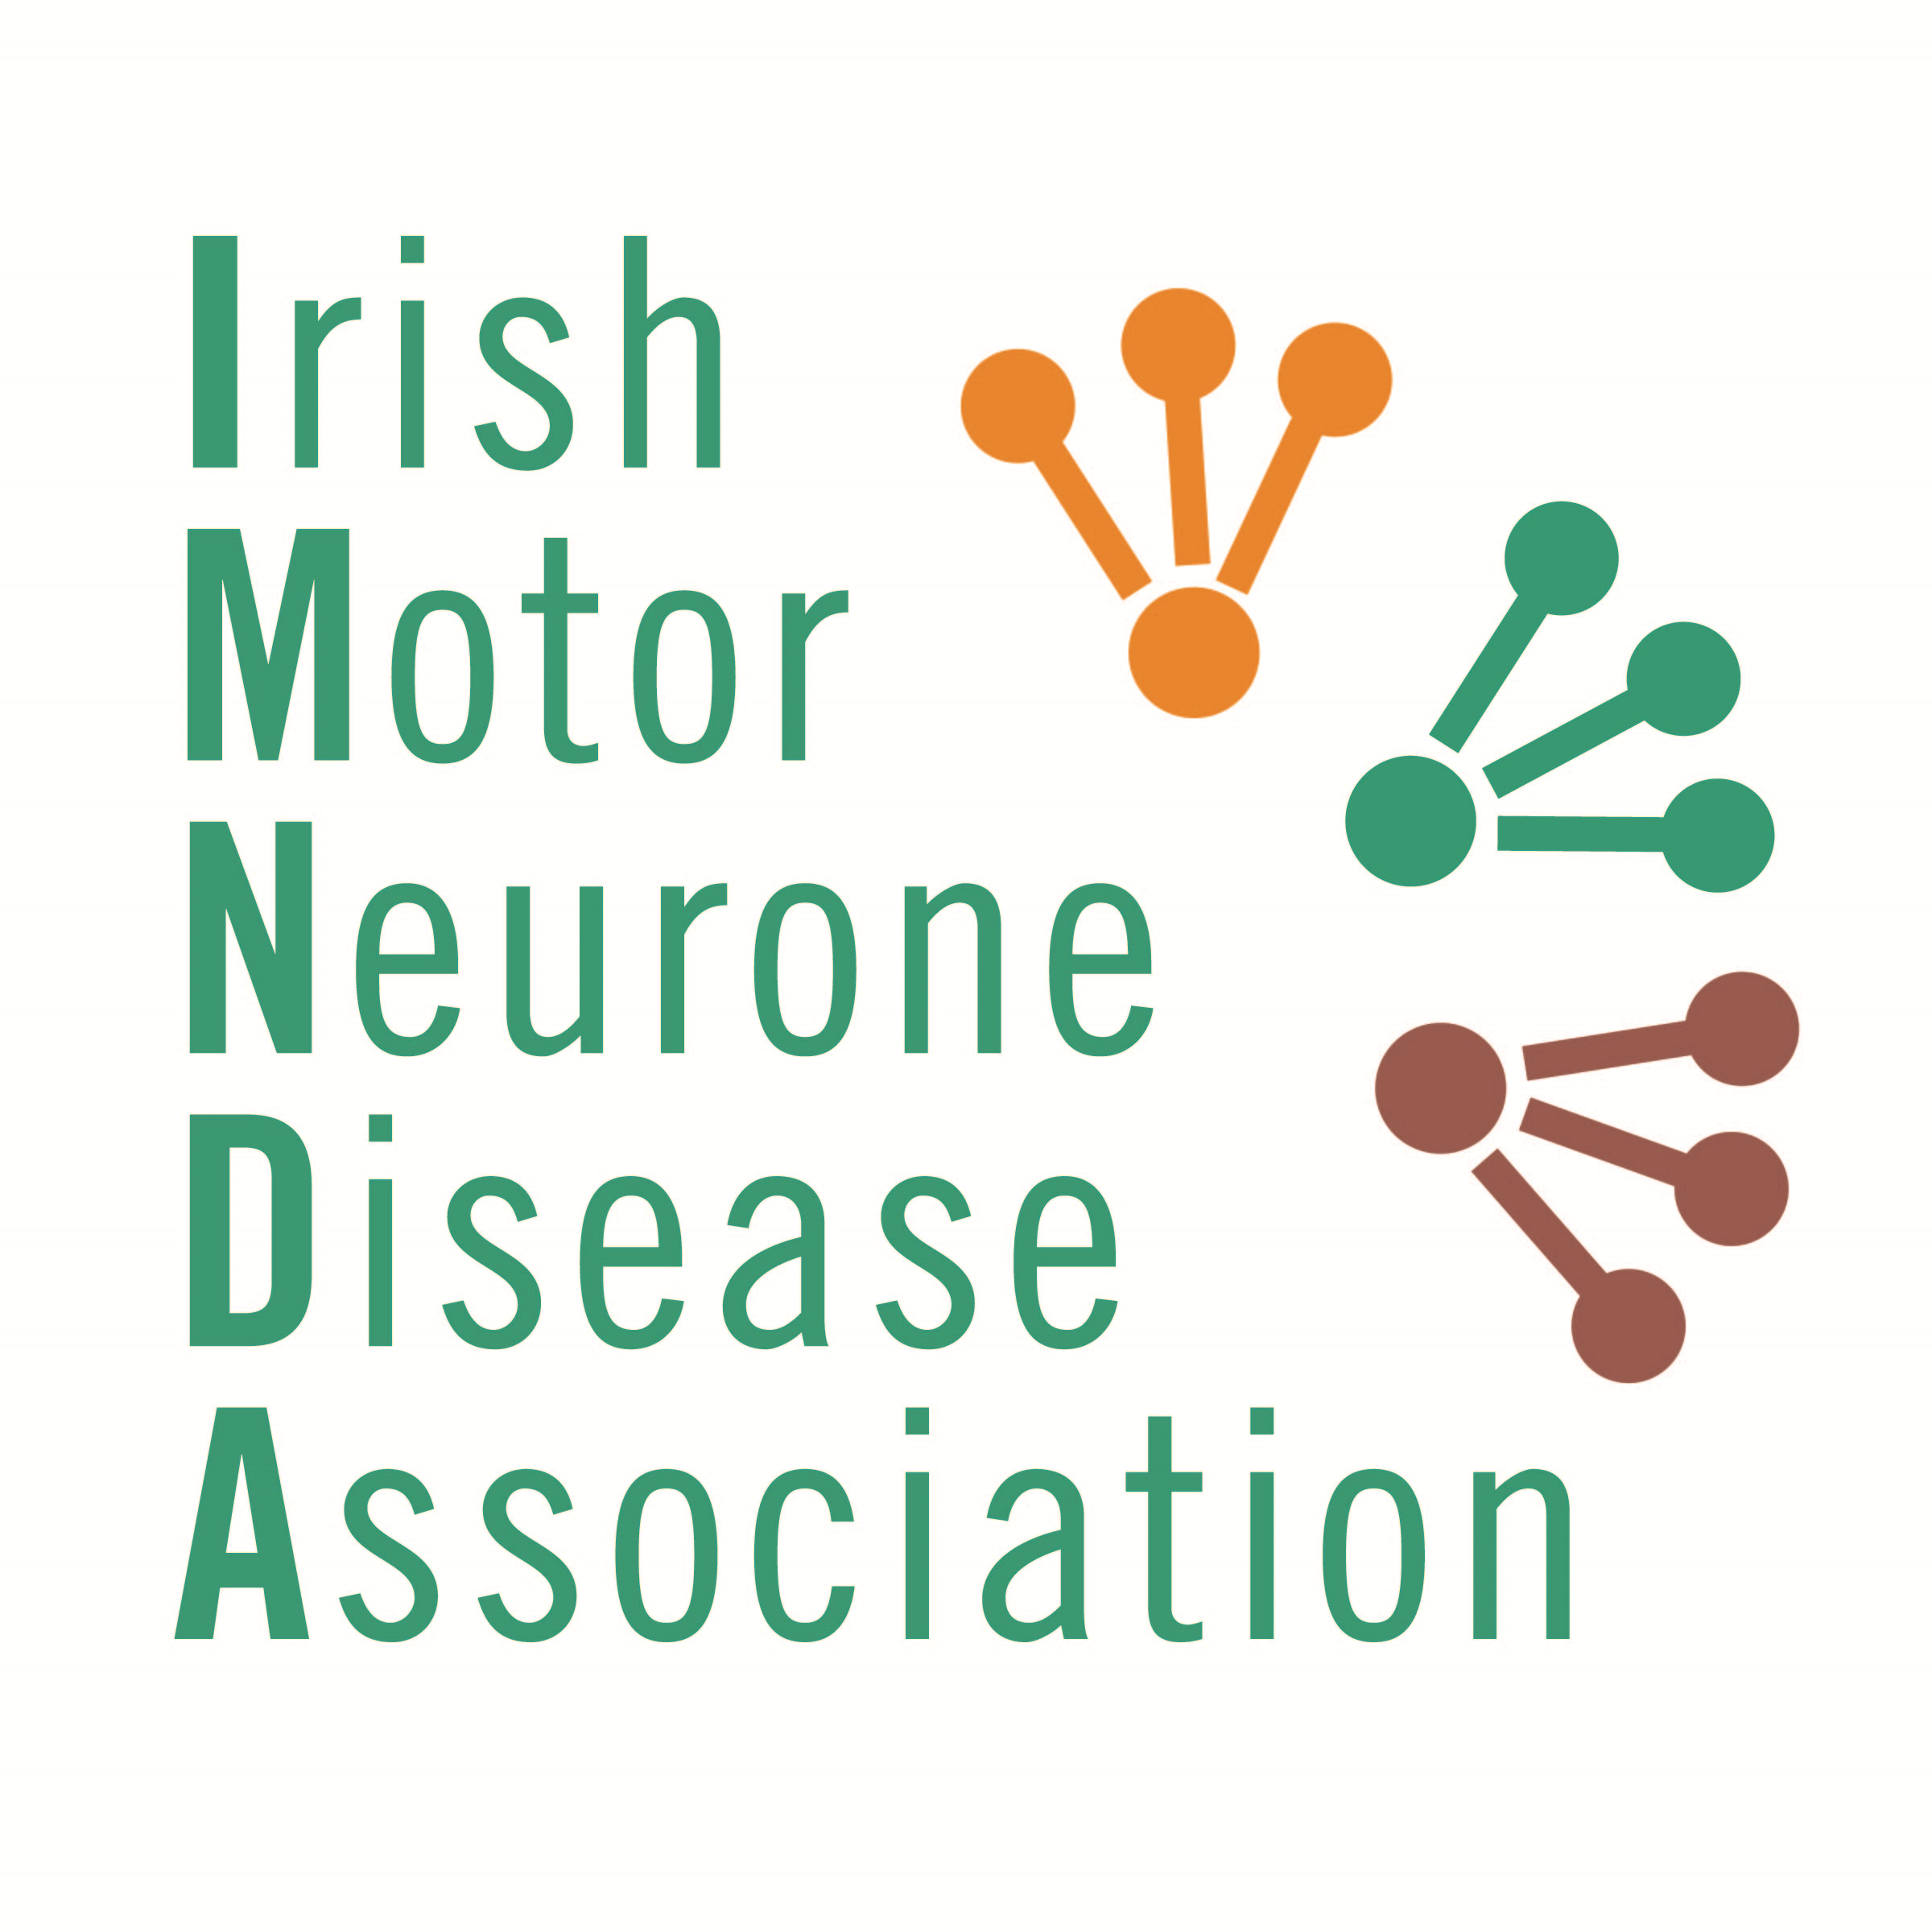 Irish Motor Neurone Disease Association